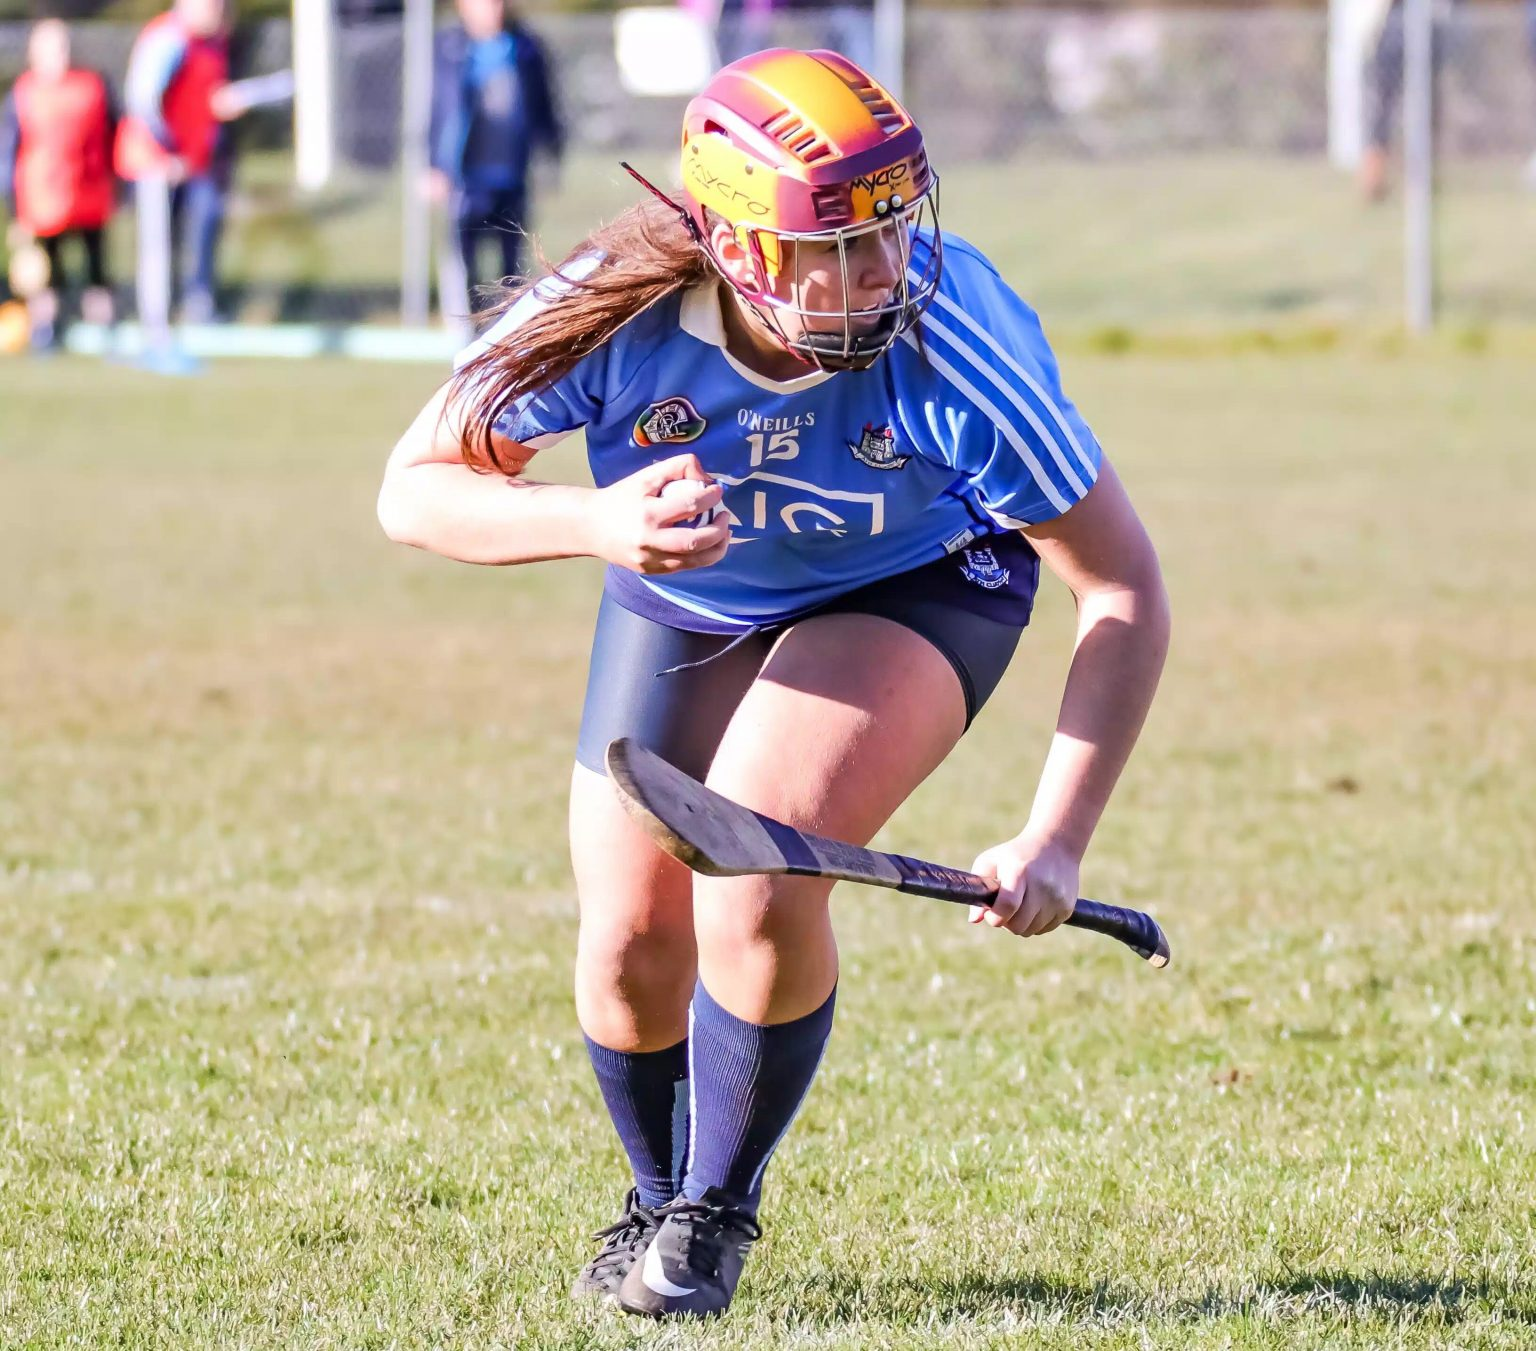 Dublin Premier Junior Camogie Player in a sky blue jersey, navy skort, red and yellow helmet with the ball in her right hand and hurl in left hand during Dublin's win to qualify for the All Ireland semi final